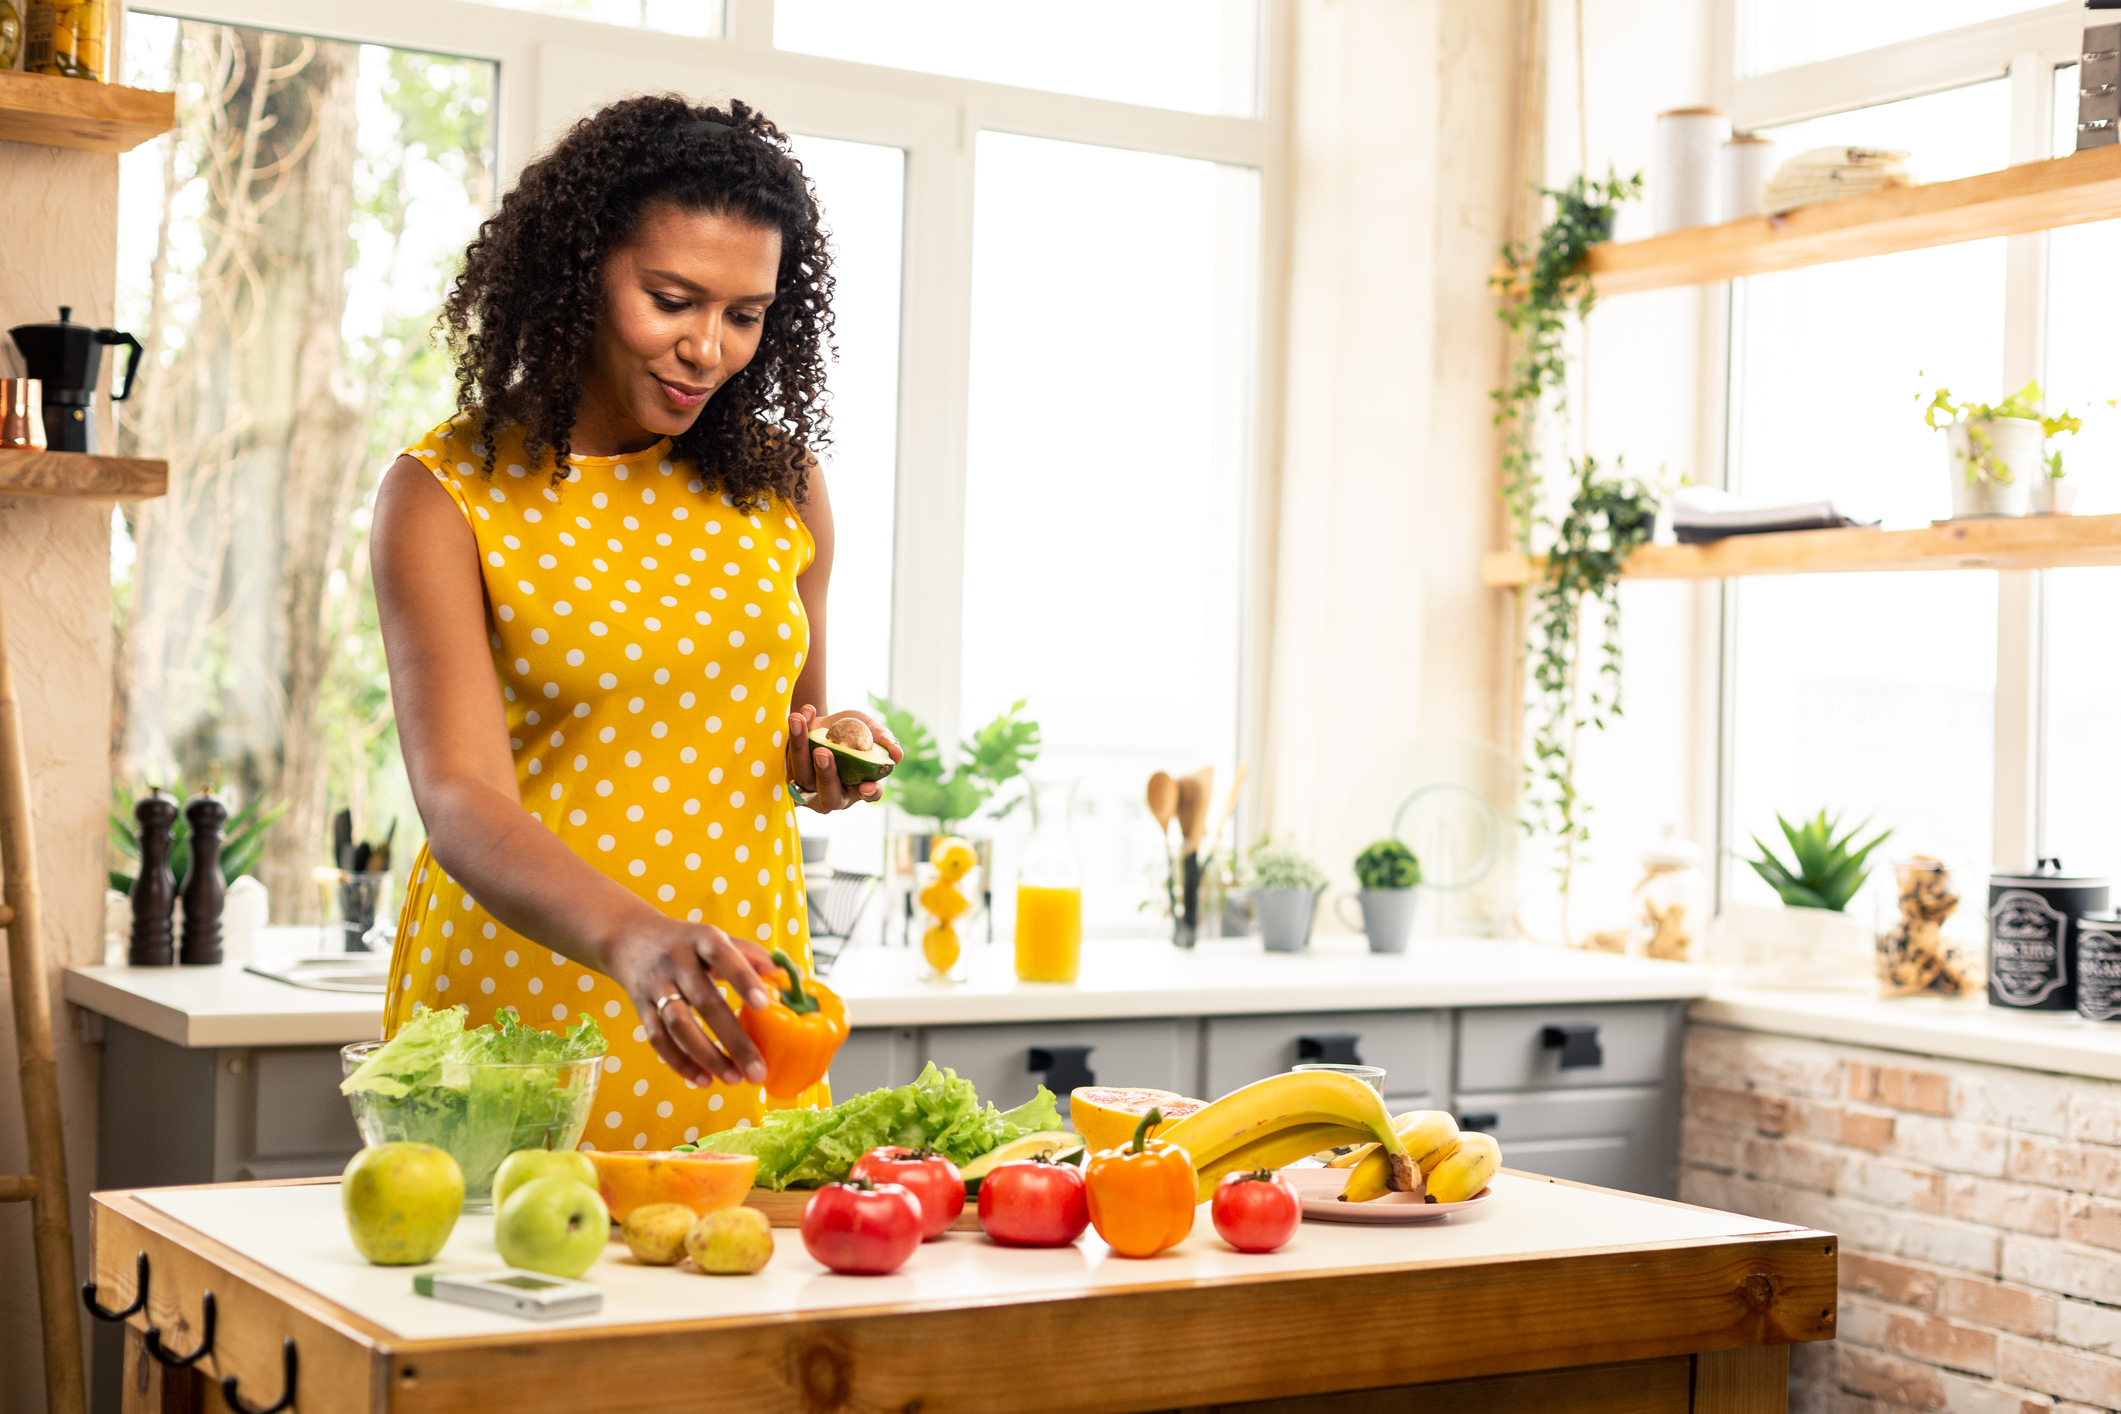 The 6-month diet that could put type 2 diabetes into remission